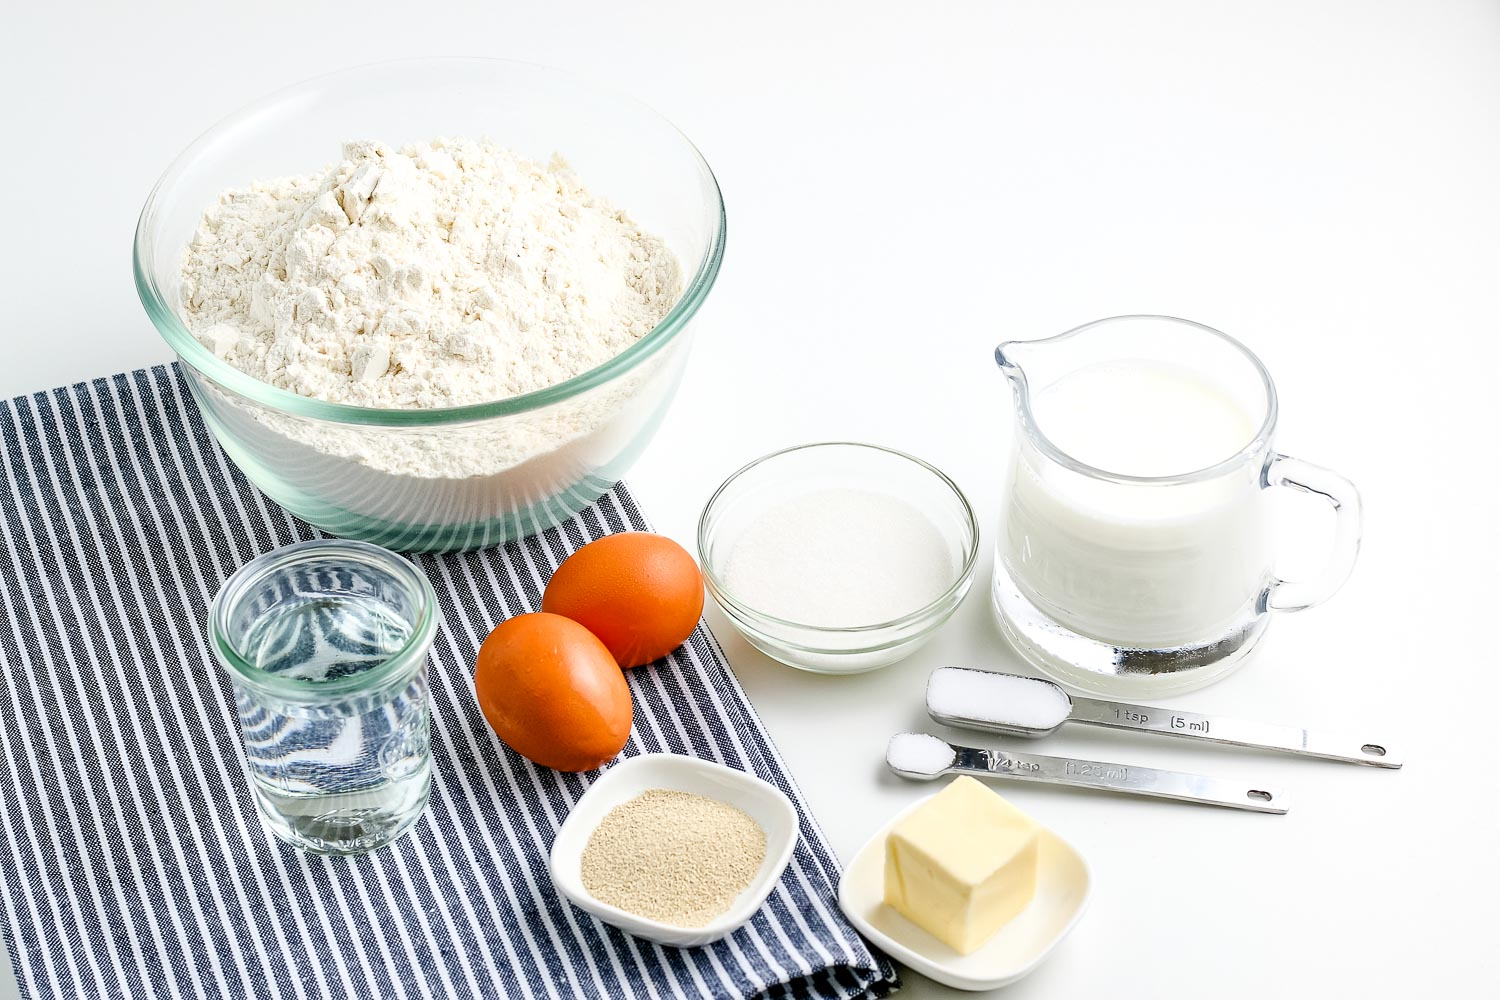 All of the ingredients needed to make this Homemade Dinner Rolls recipe.